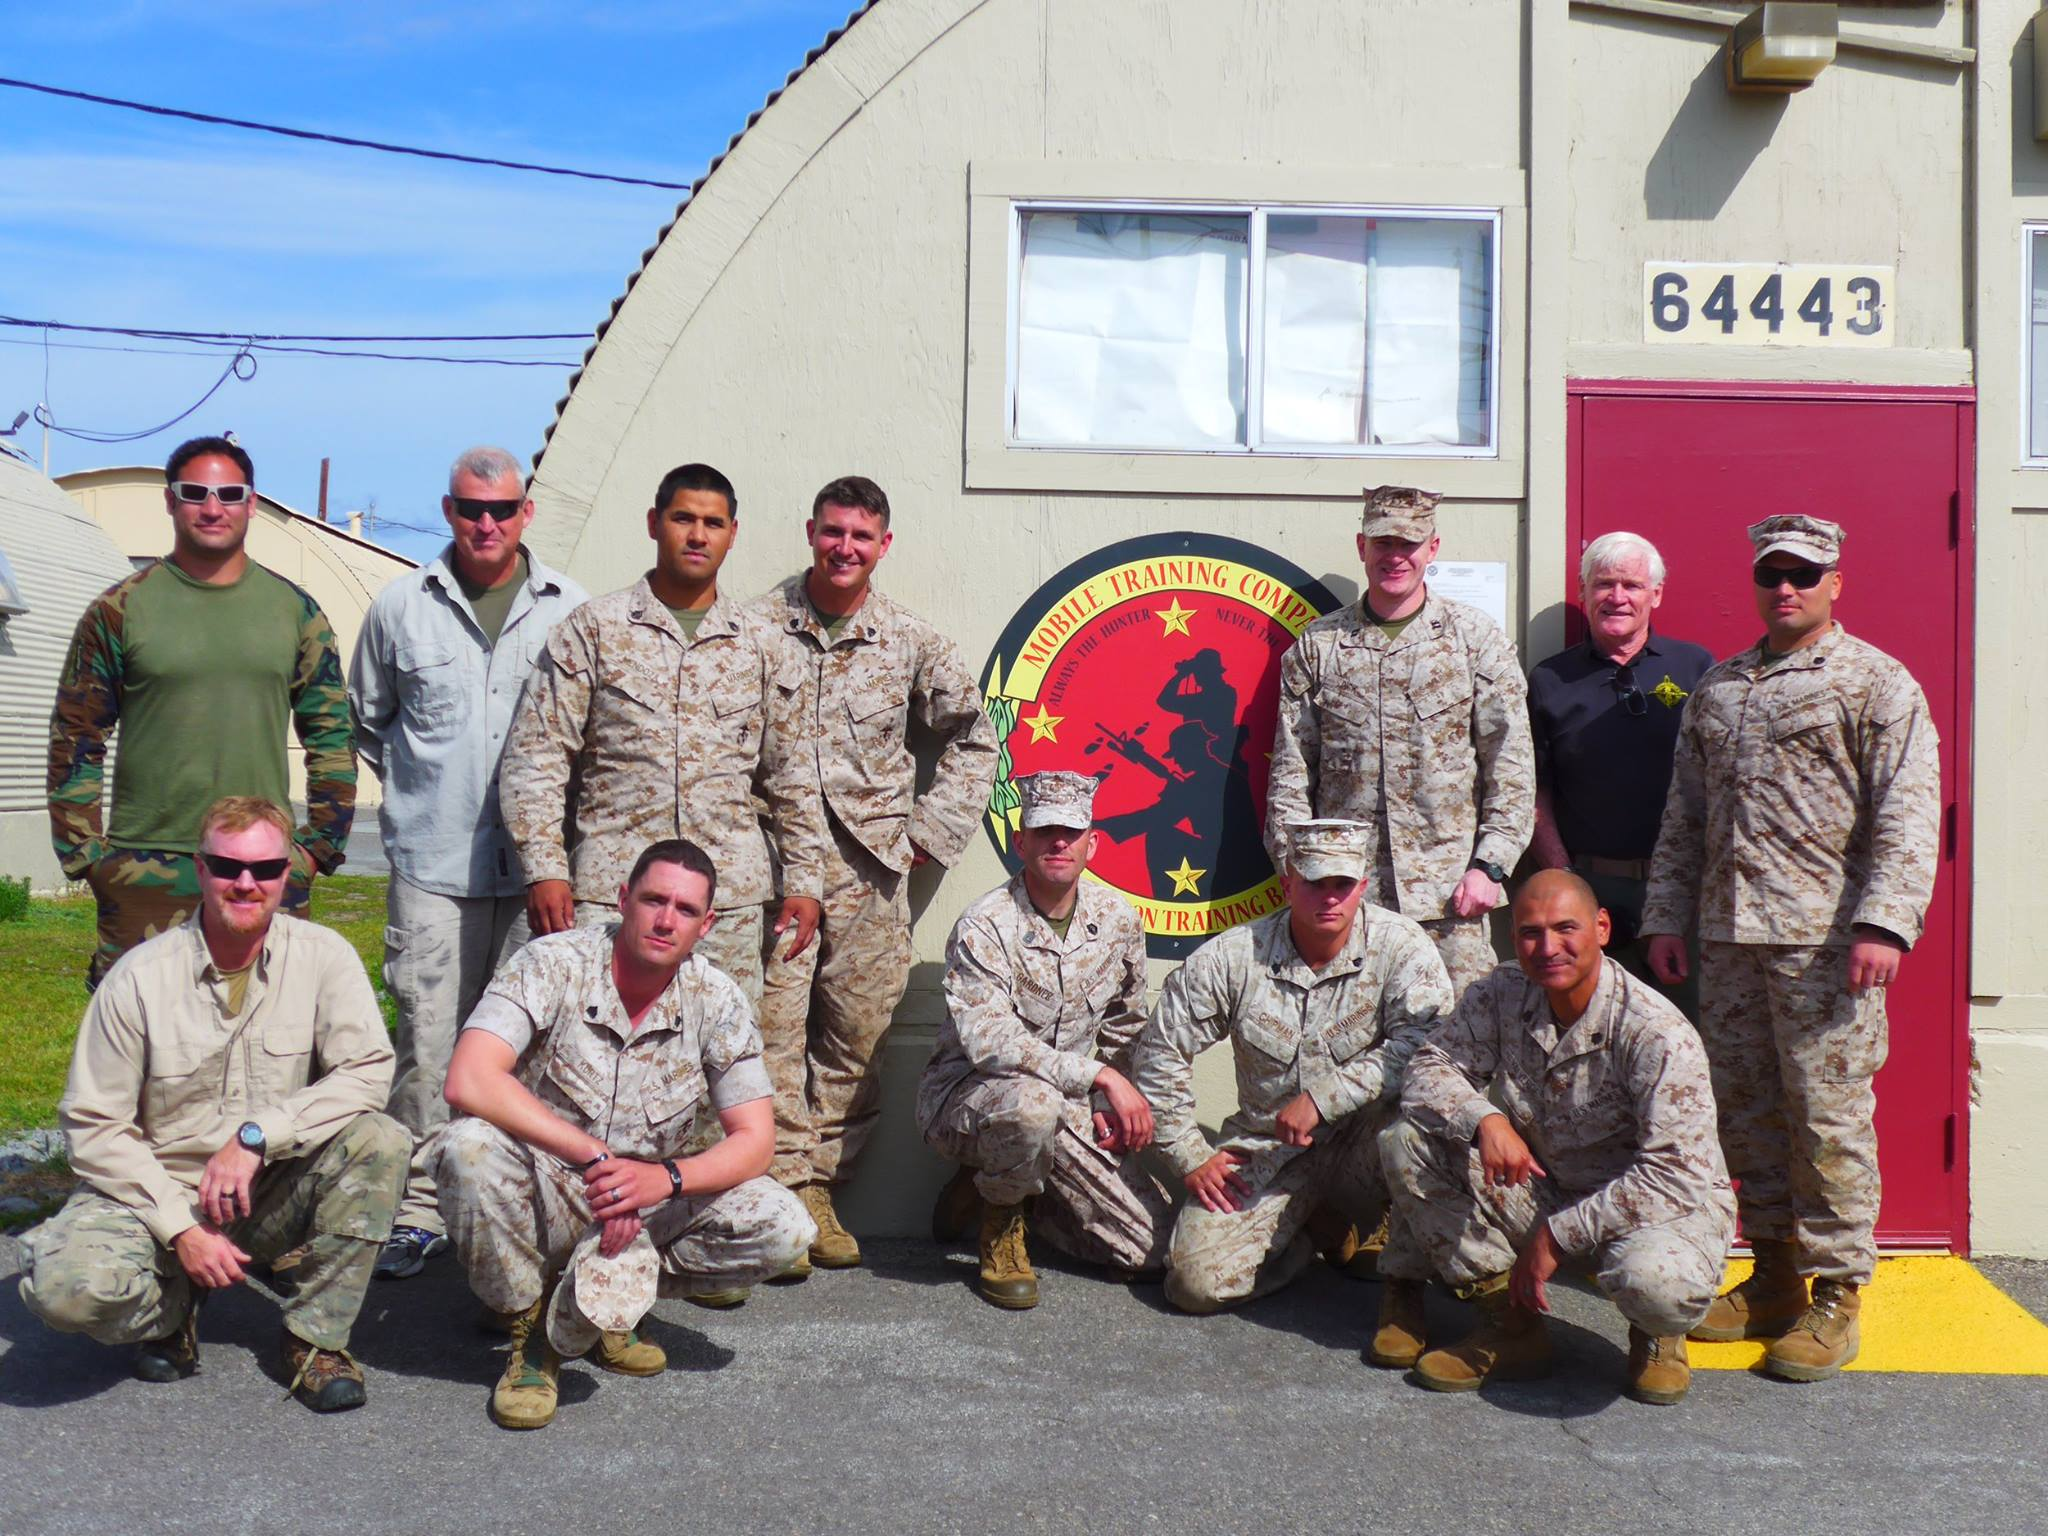 USMC Instructors at Camp Pendleton